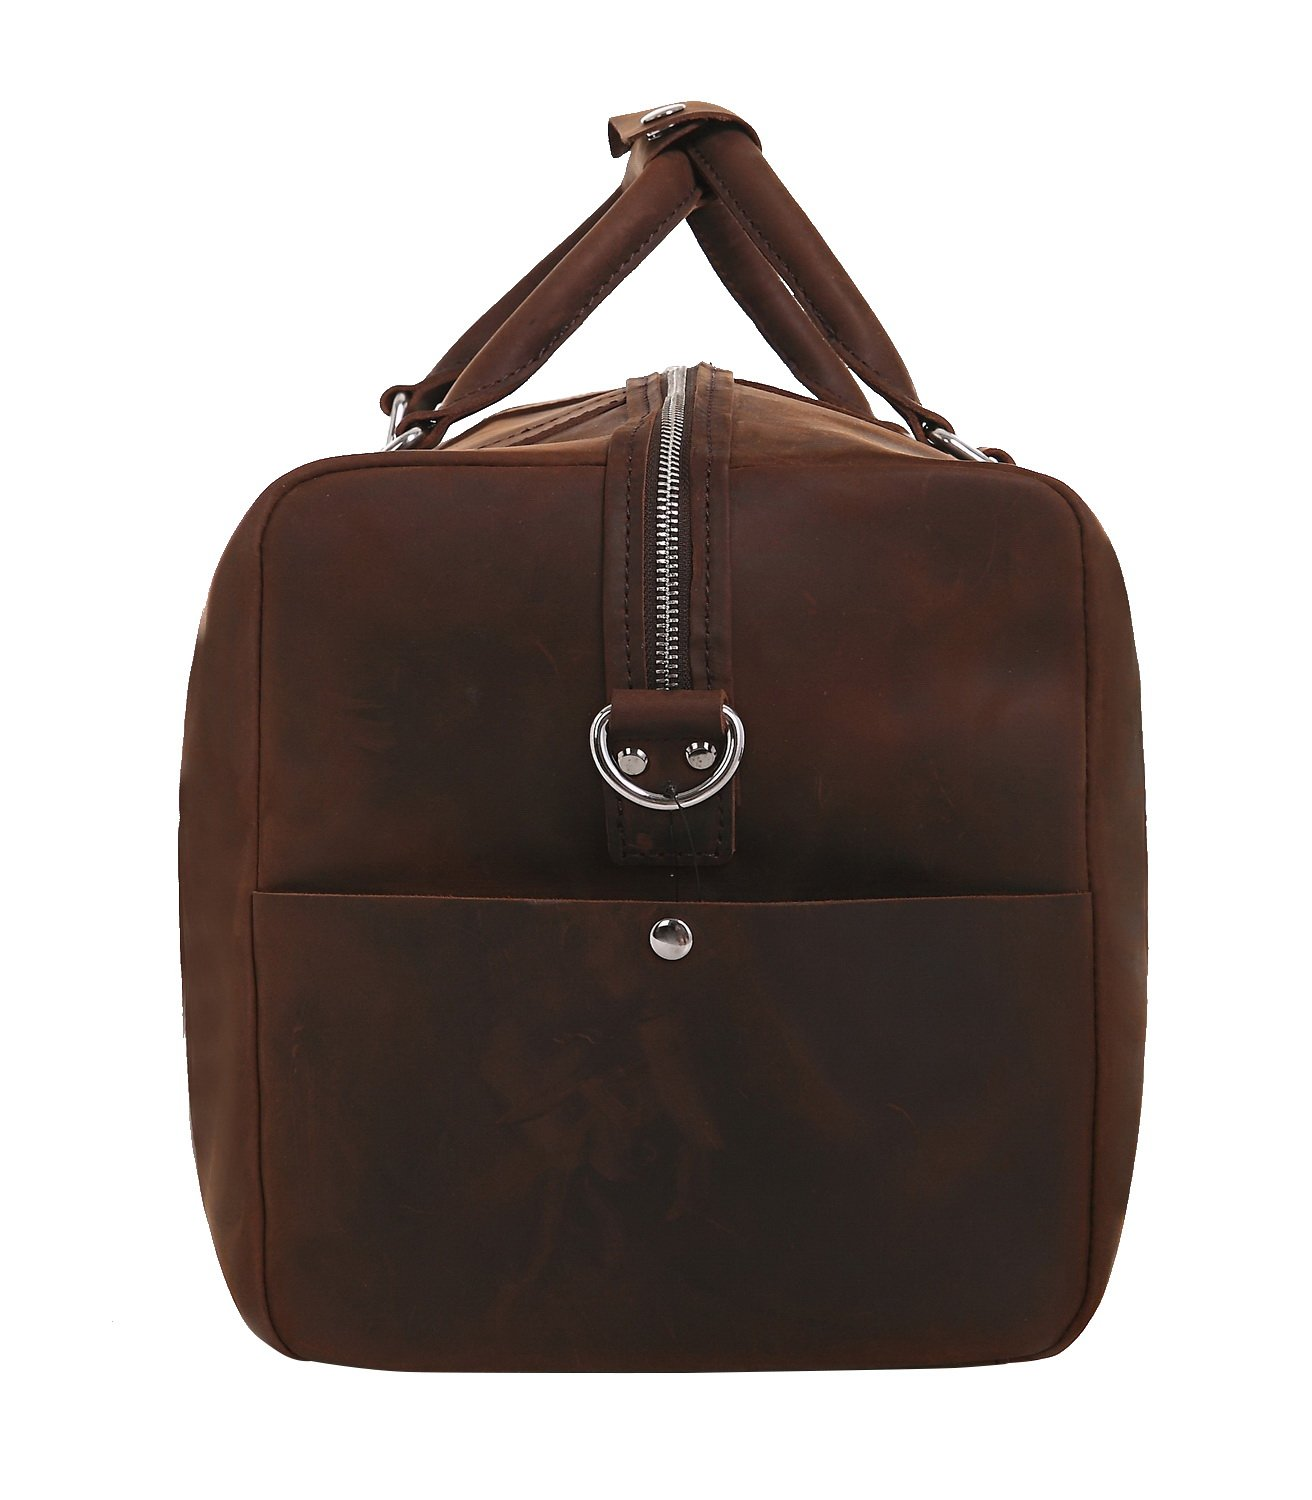 Vintage Full Grain Leather Cowhide Leather Overnight Travel Carry On Tote LD03.VD